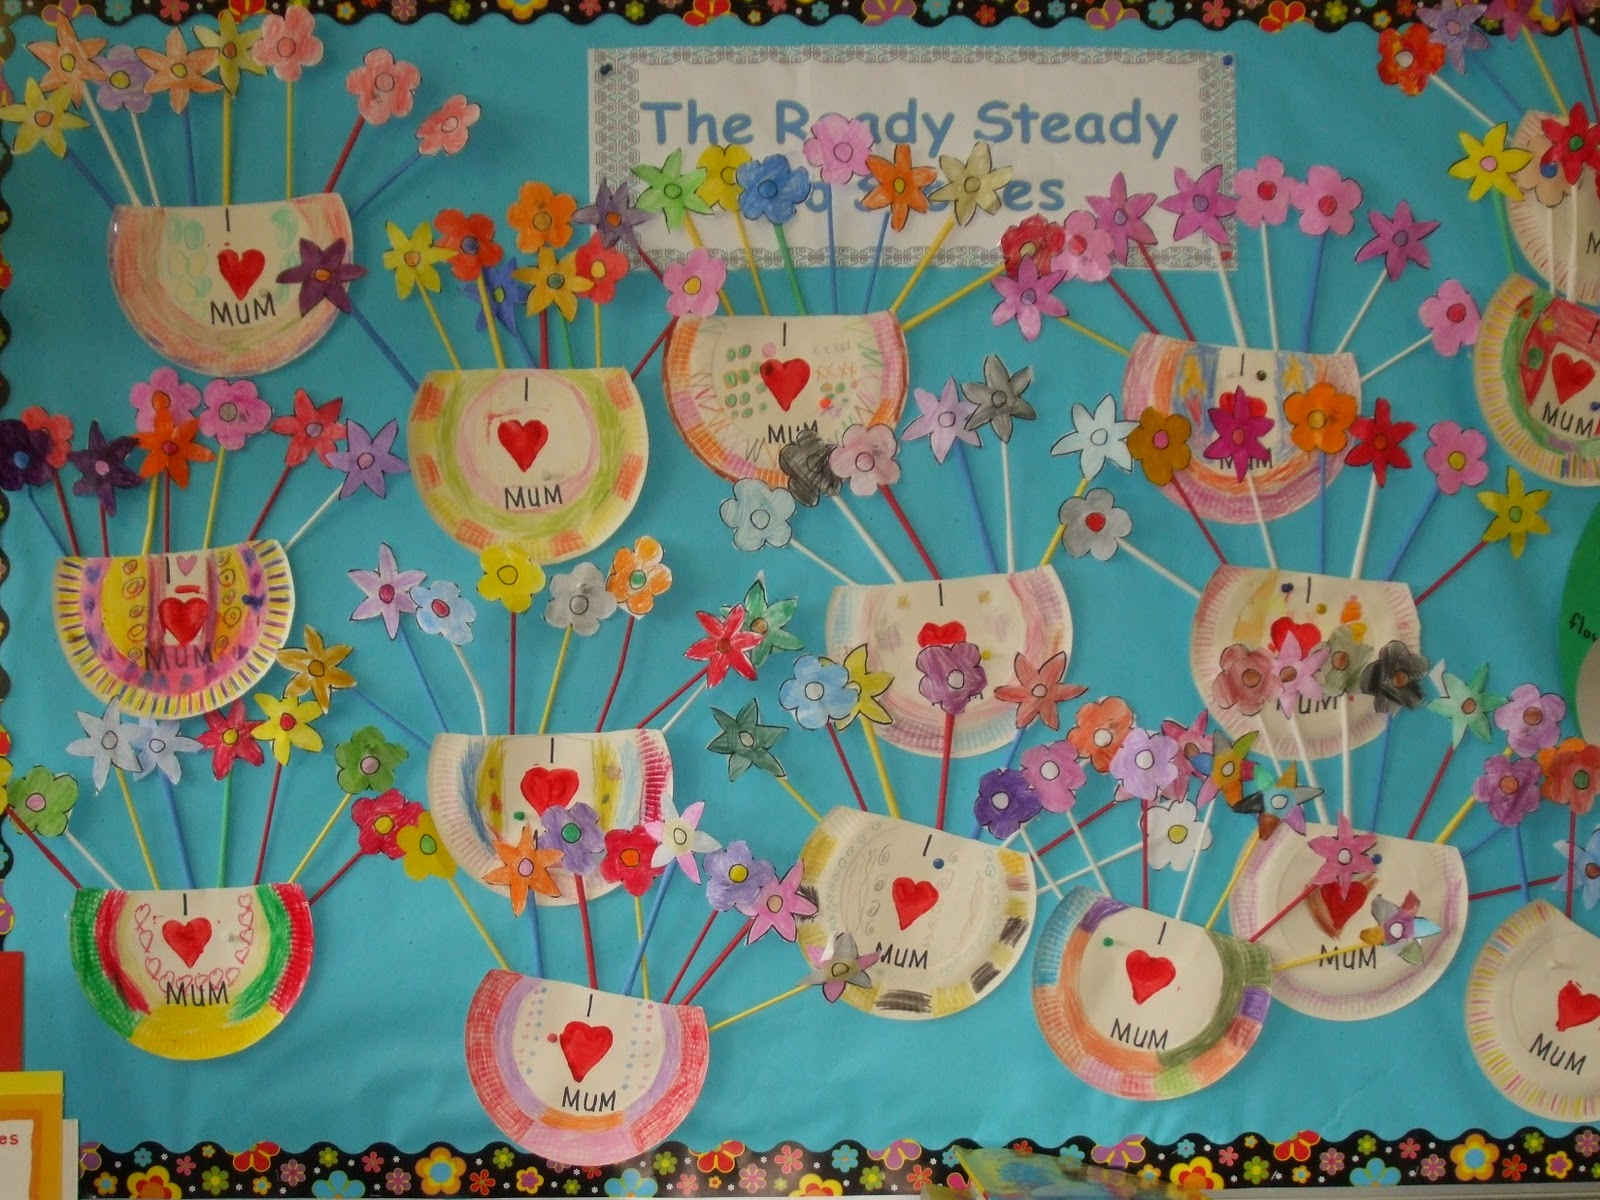 Ms flaherty 39 s class senior infants mother 39 s day art for Mothers day art for preschoolers